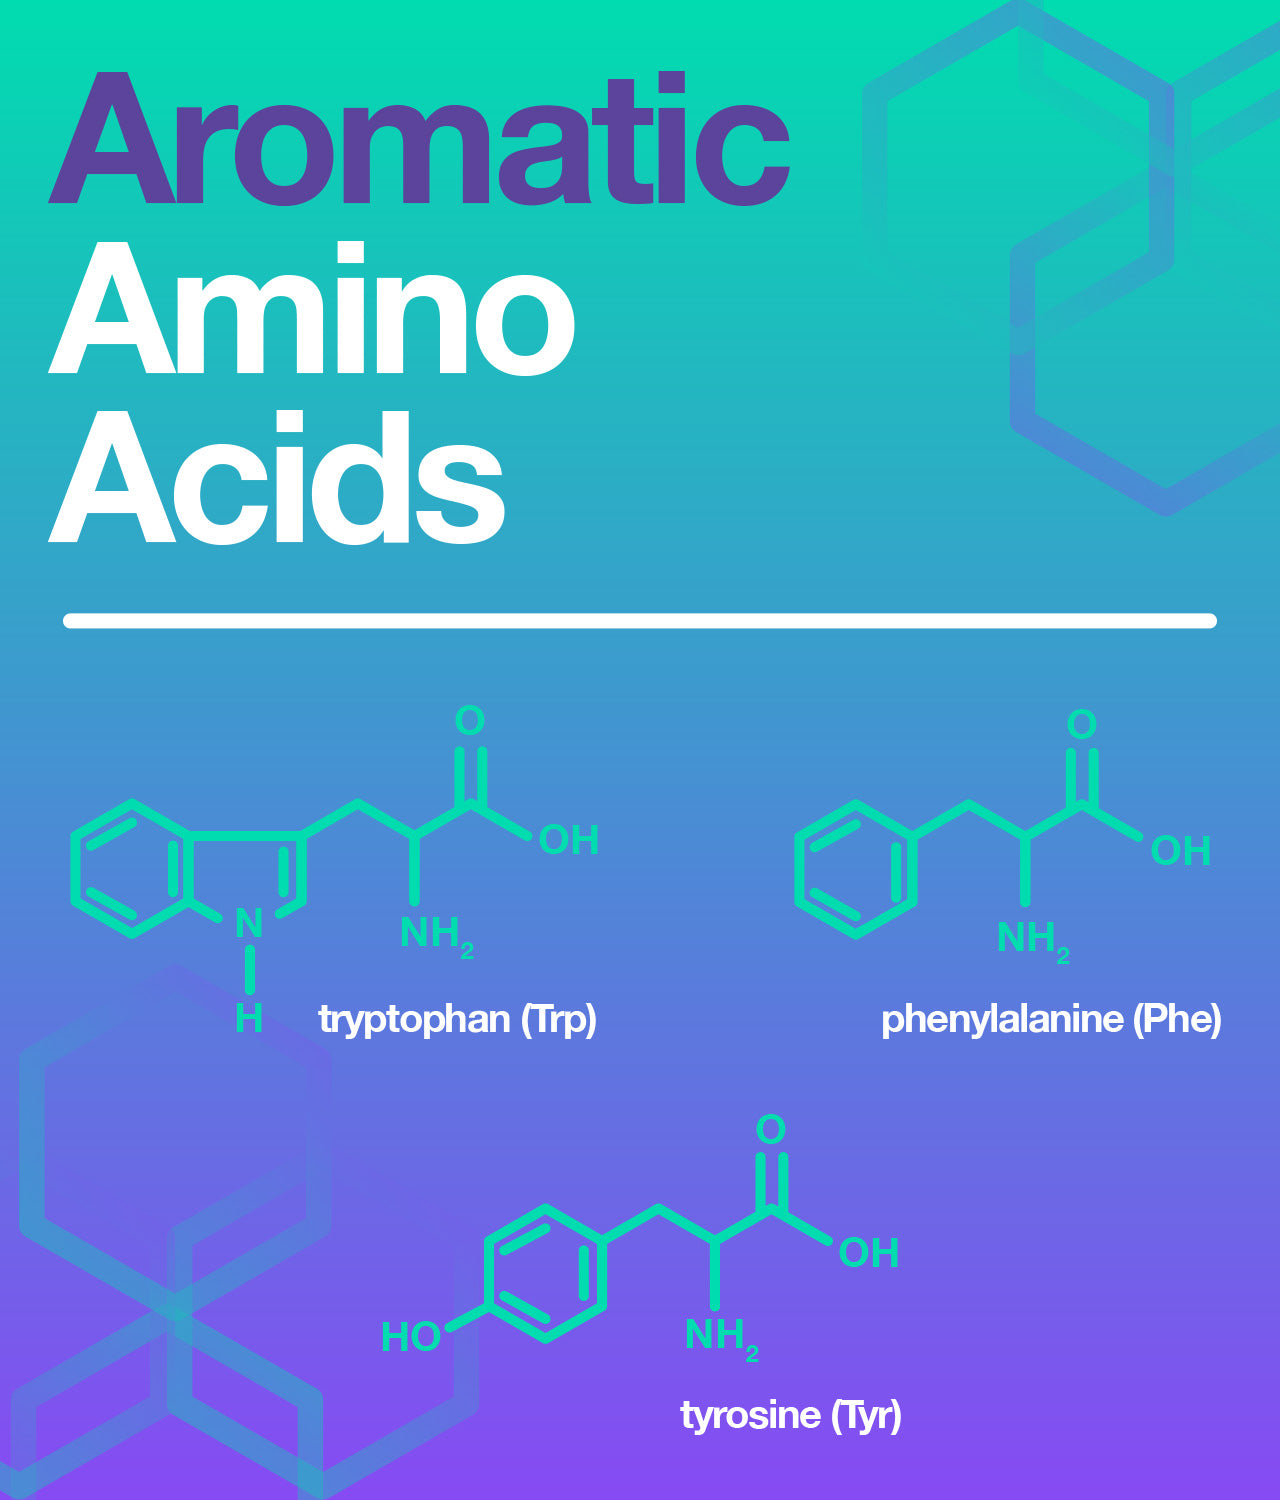 the structure of the aromatic amino acids